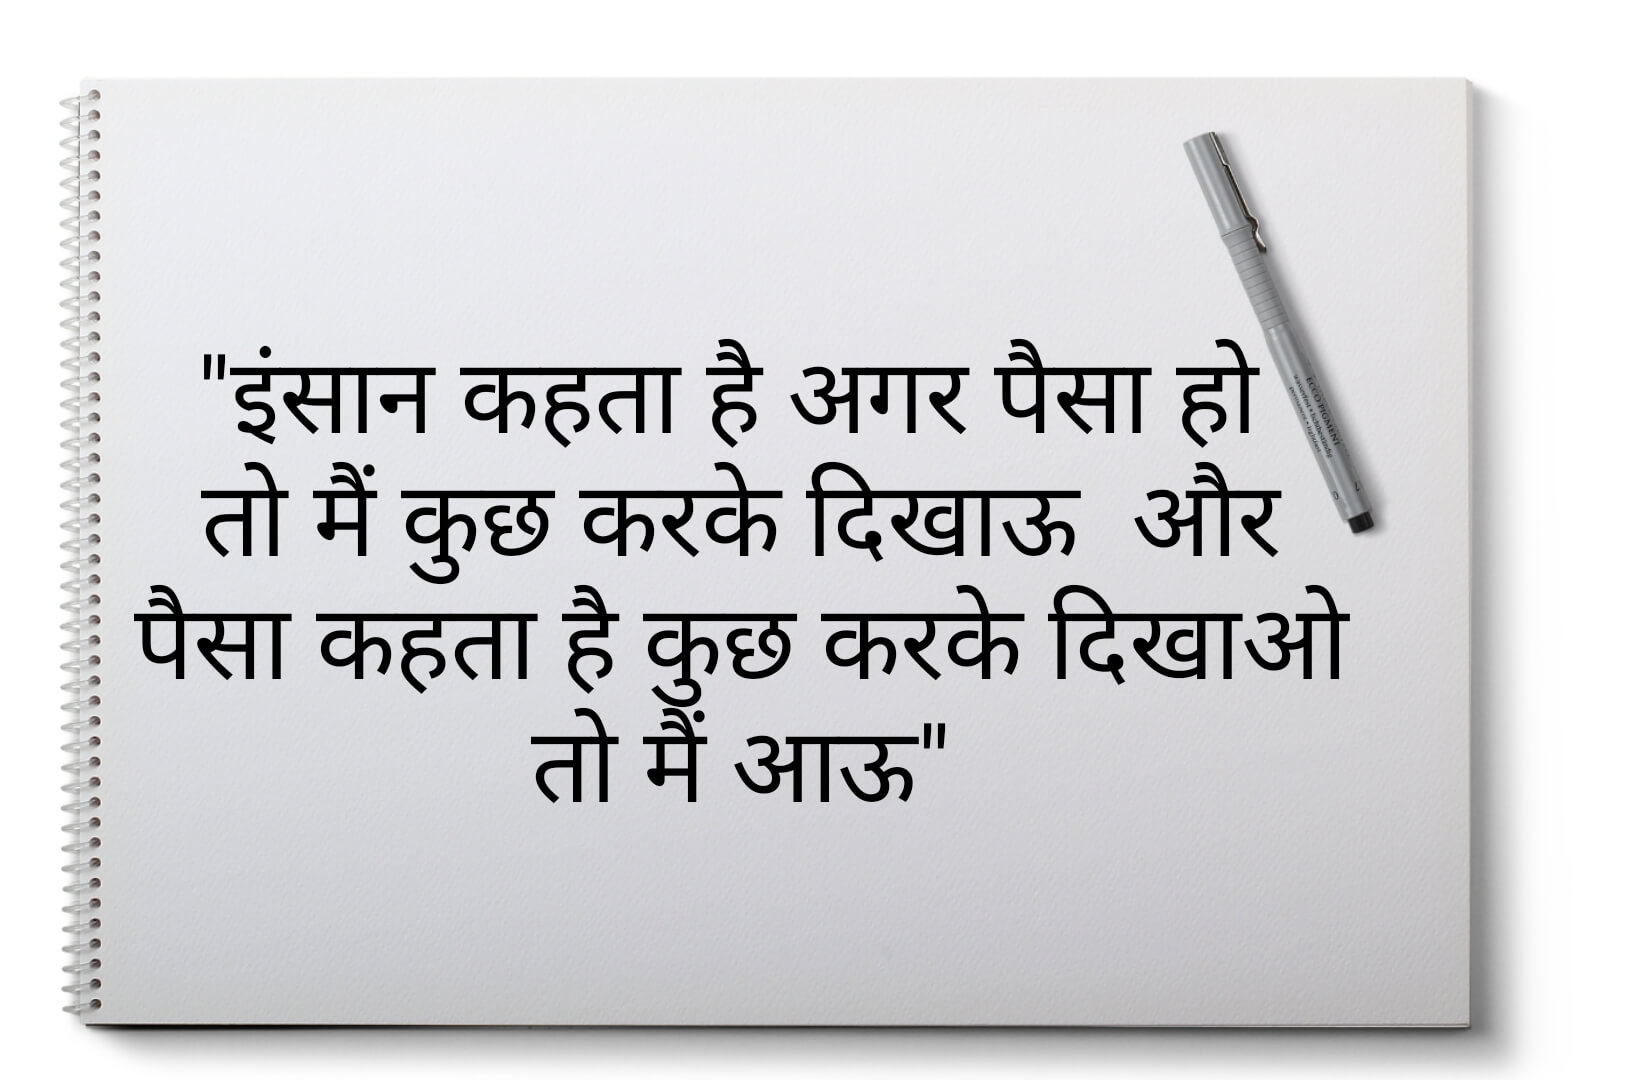 About Motivational Shayari in Hindi